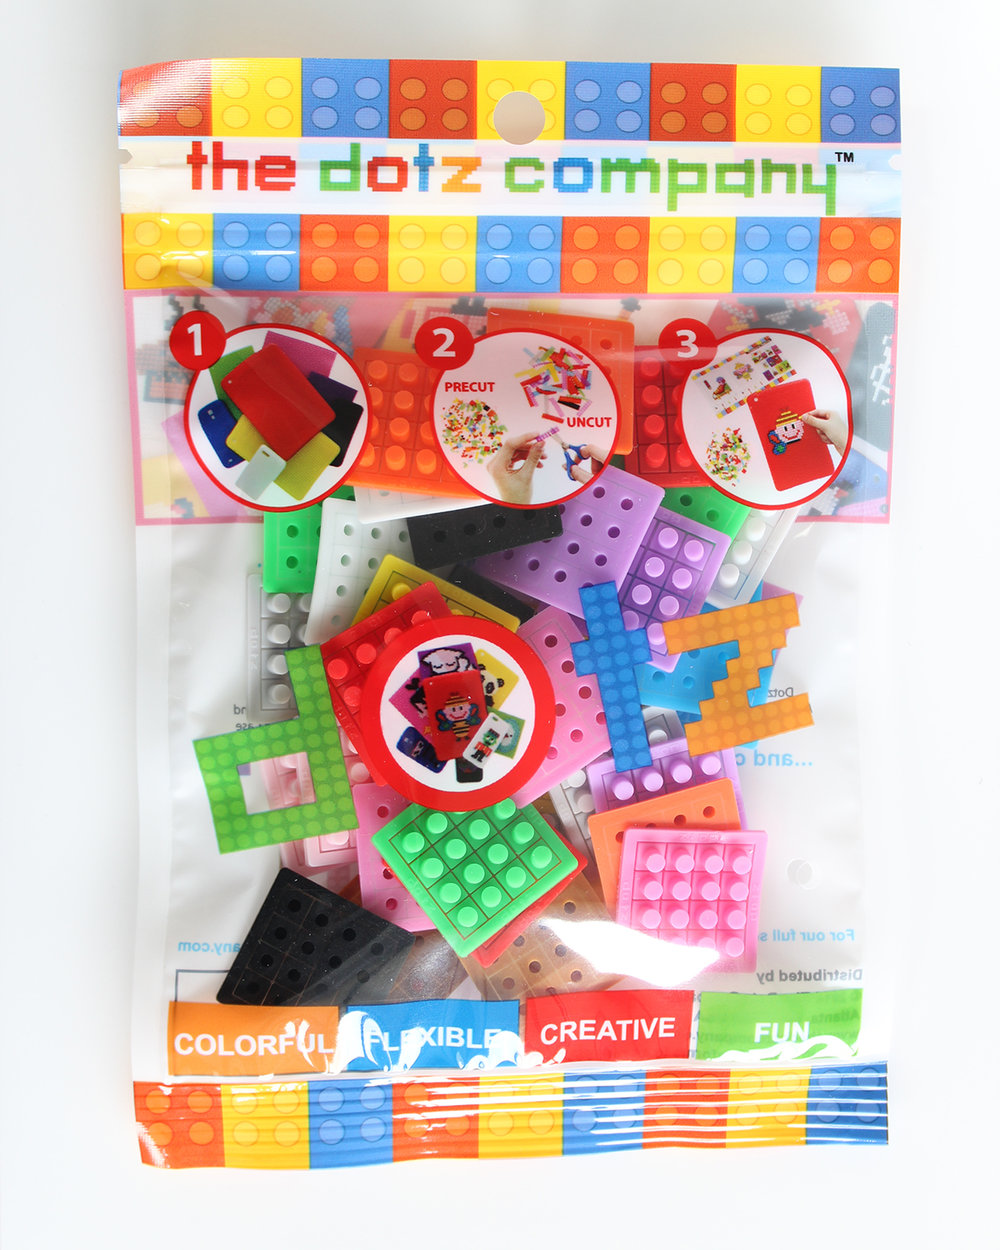 36 dotzBLOK Mixed Pack. 3 of 12 colors